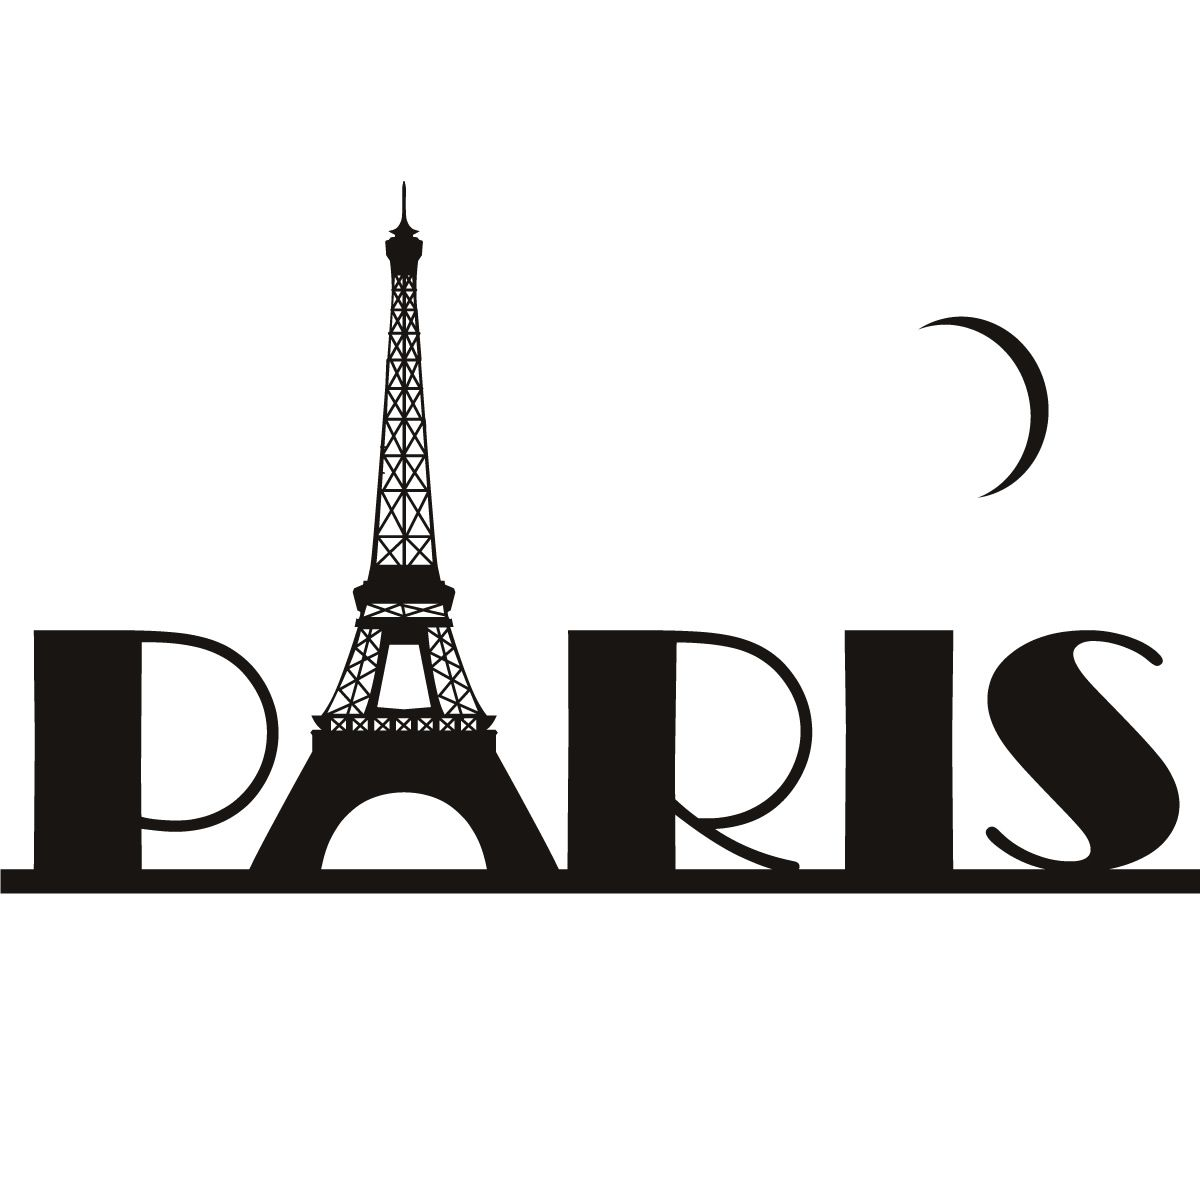 paris eiffel tower france wall art sticker wall decal transfers wall decals tower and france. Black Bedroom Furniture Sets. Home Design Ideas